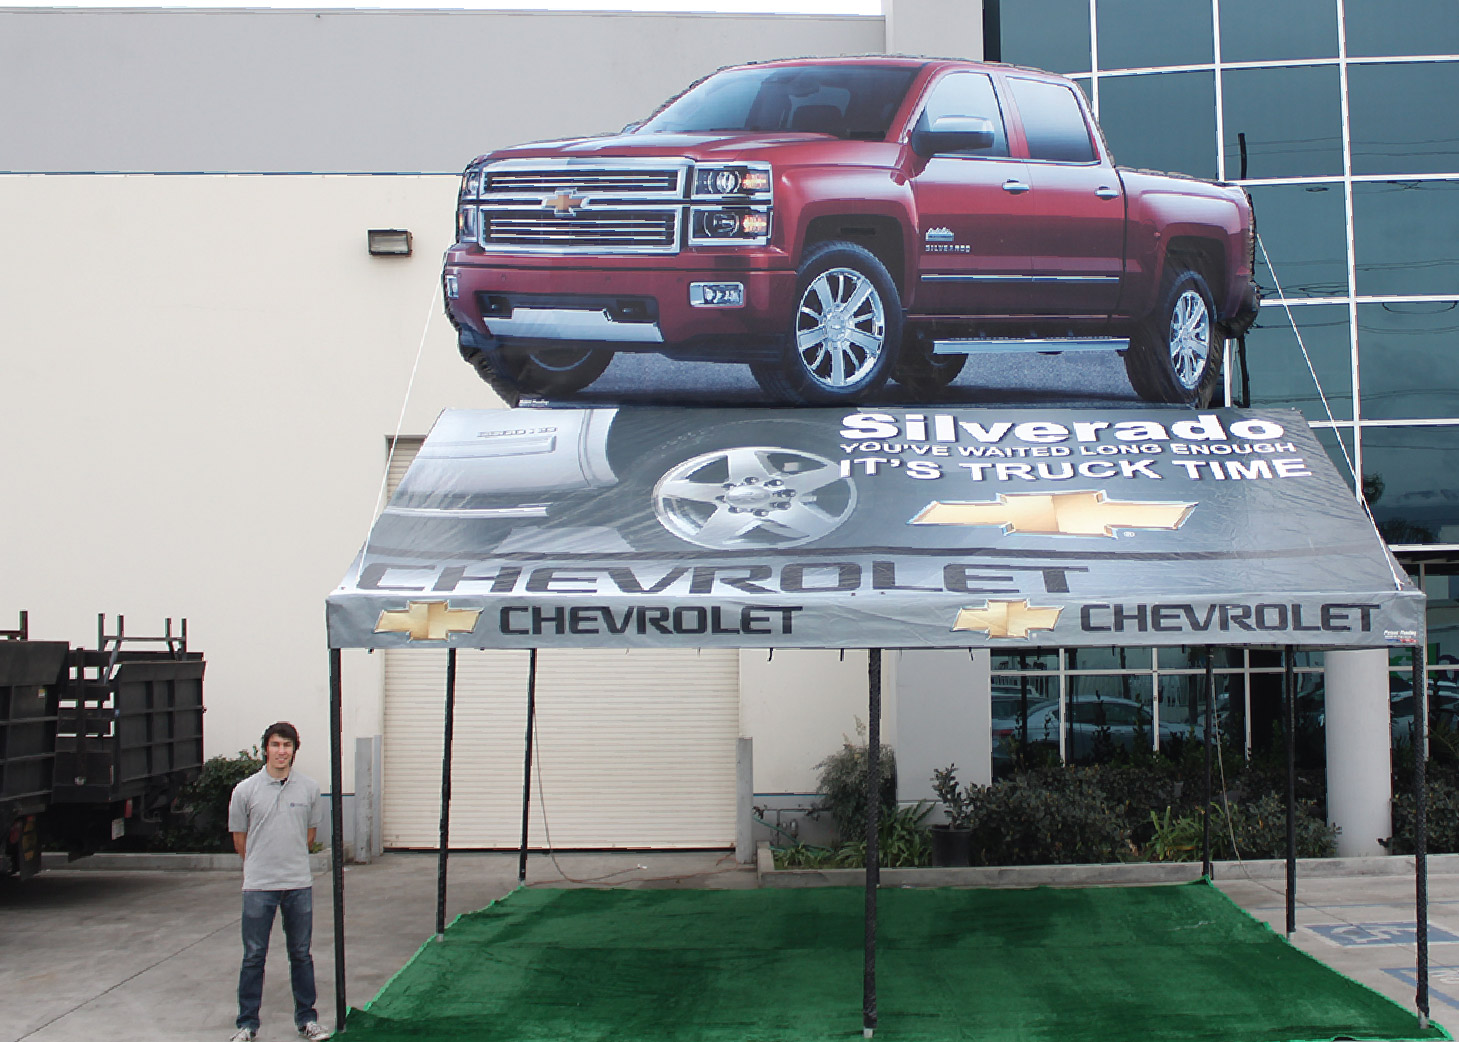 Chevrolet (Chevy) Silverado Frame Tent with Inflatable at the promotional design group facility